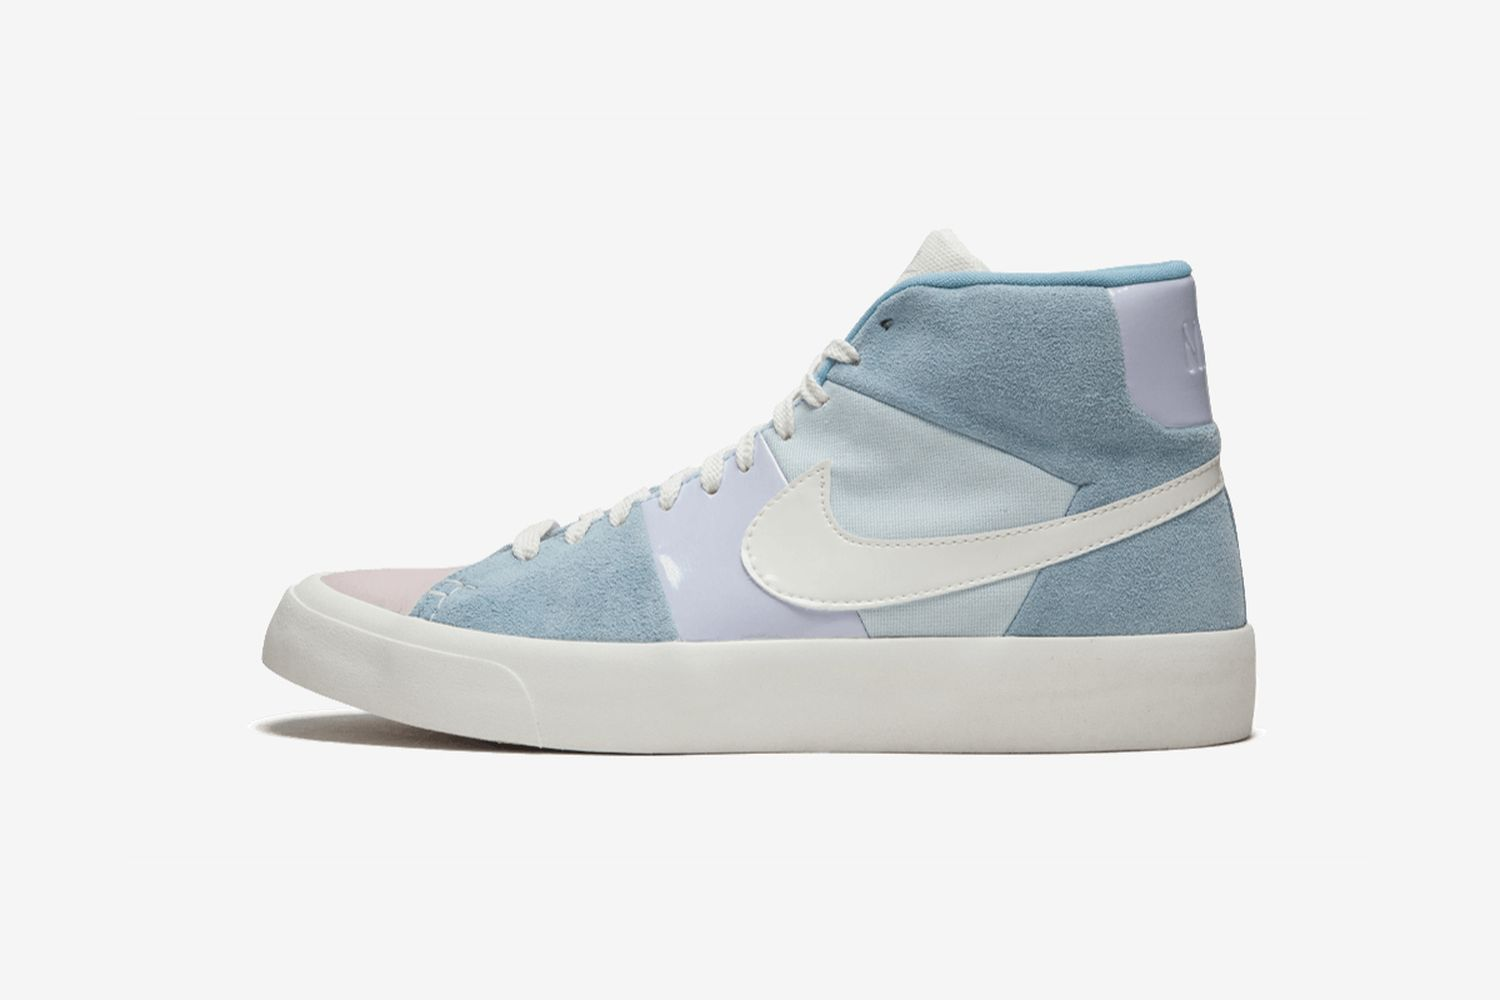 Blazer Royal Easter QS